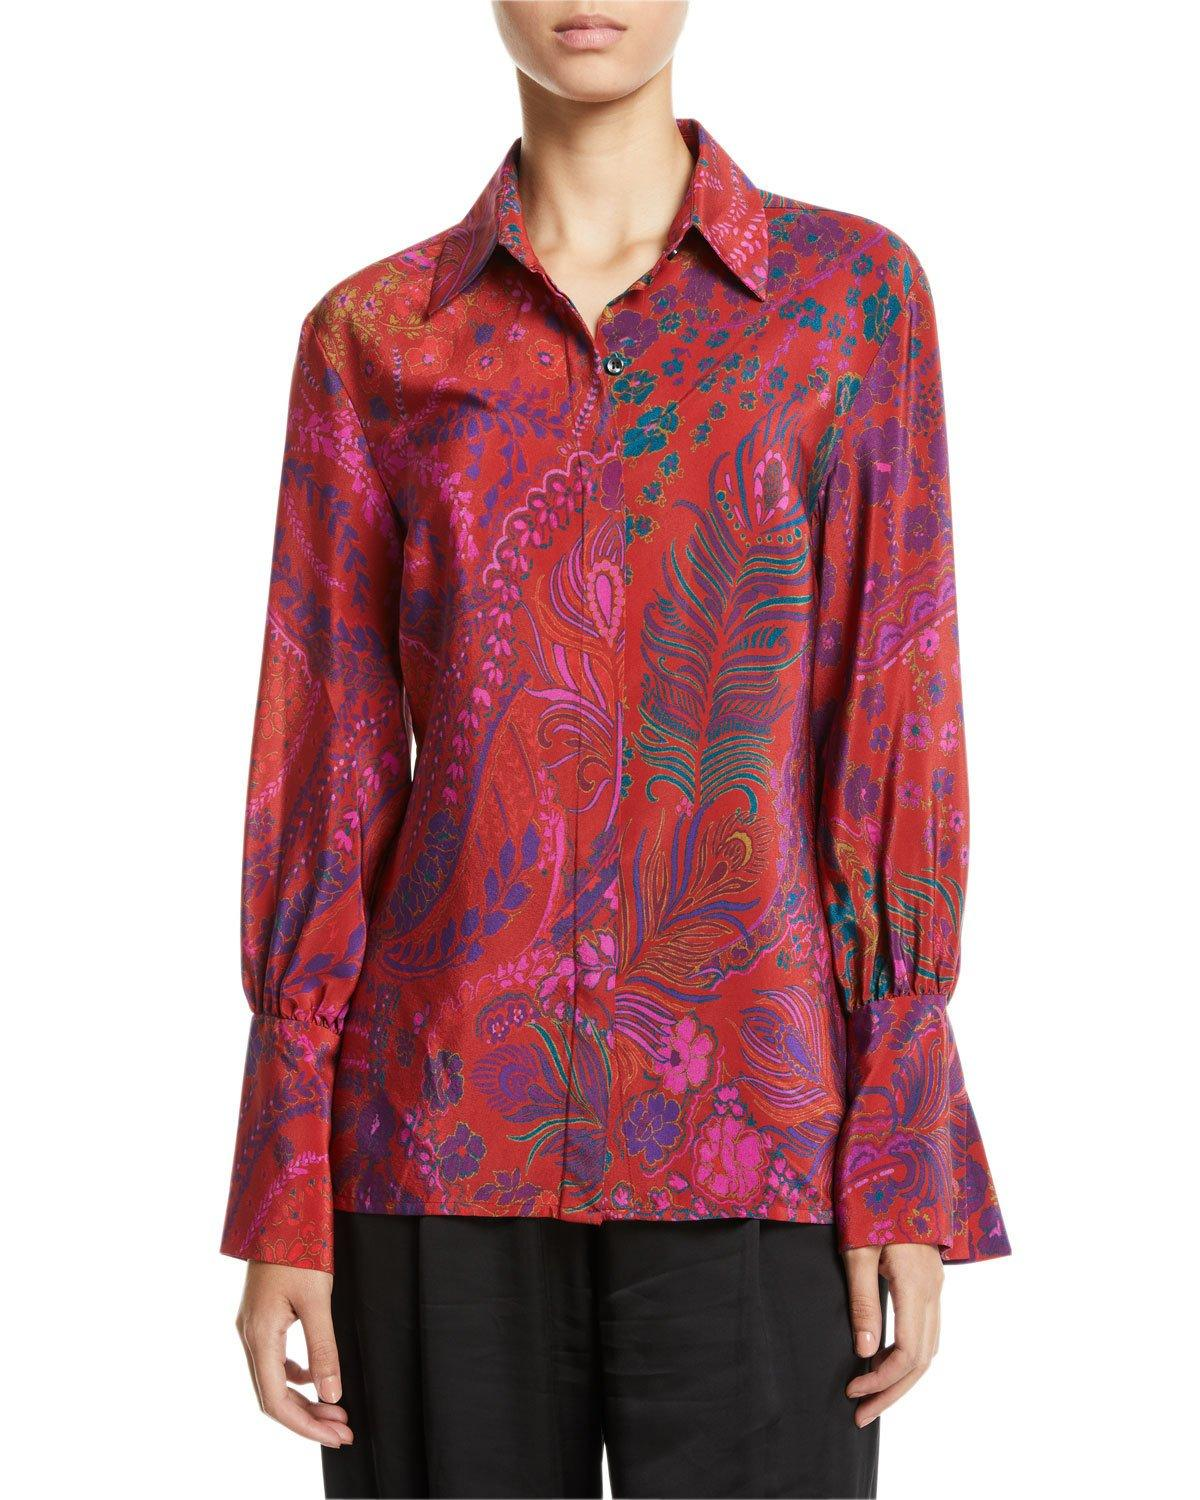 Josie Natori Long-sleeve Button-front Floral-print Silk Blouse In Red Multi